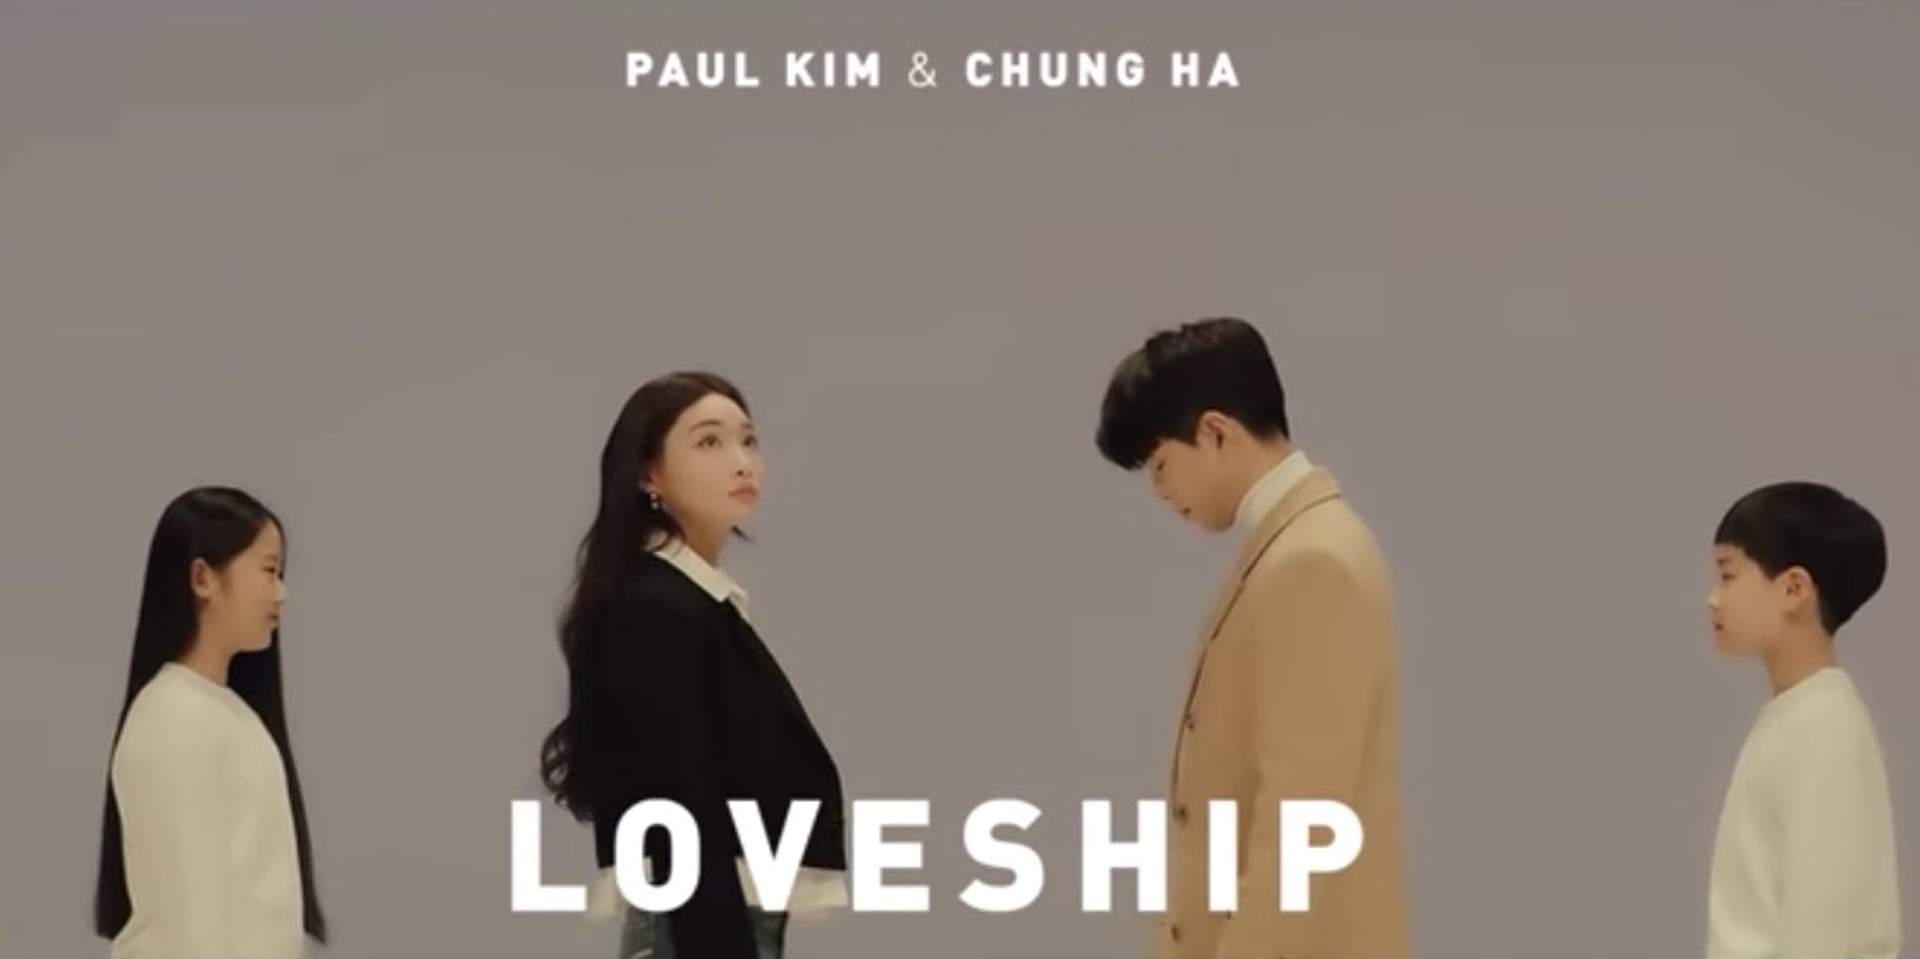 Chungha and Paul Kim release 'Loveship' music video - watch